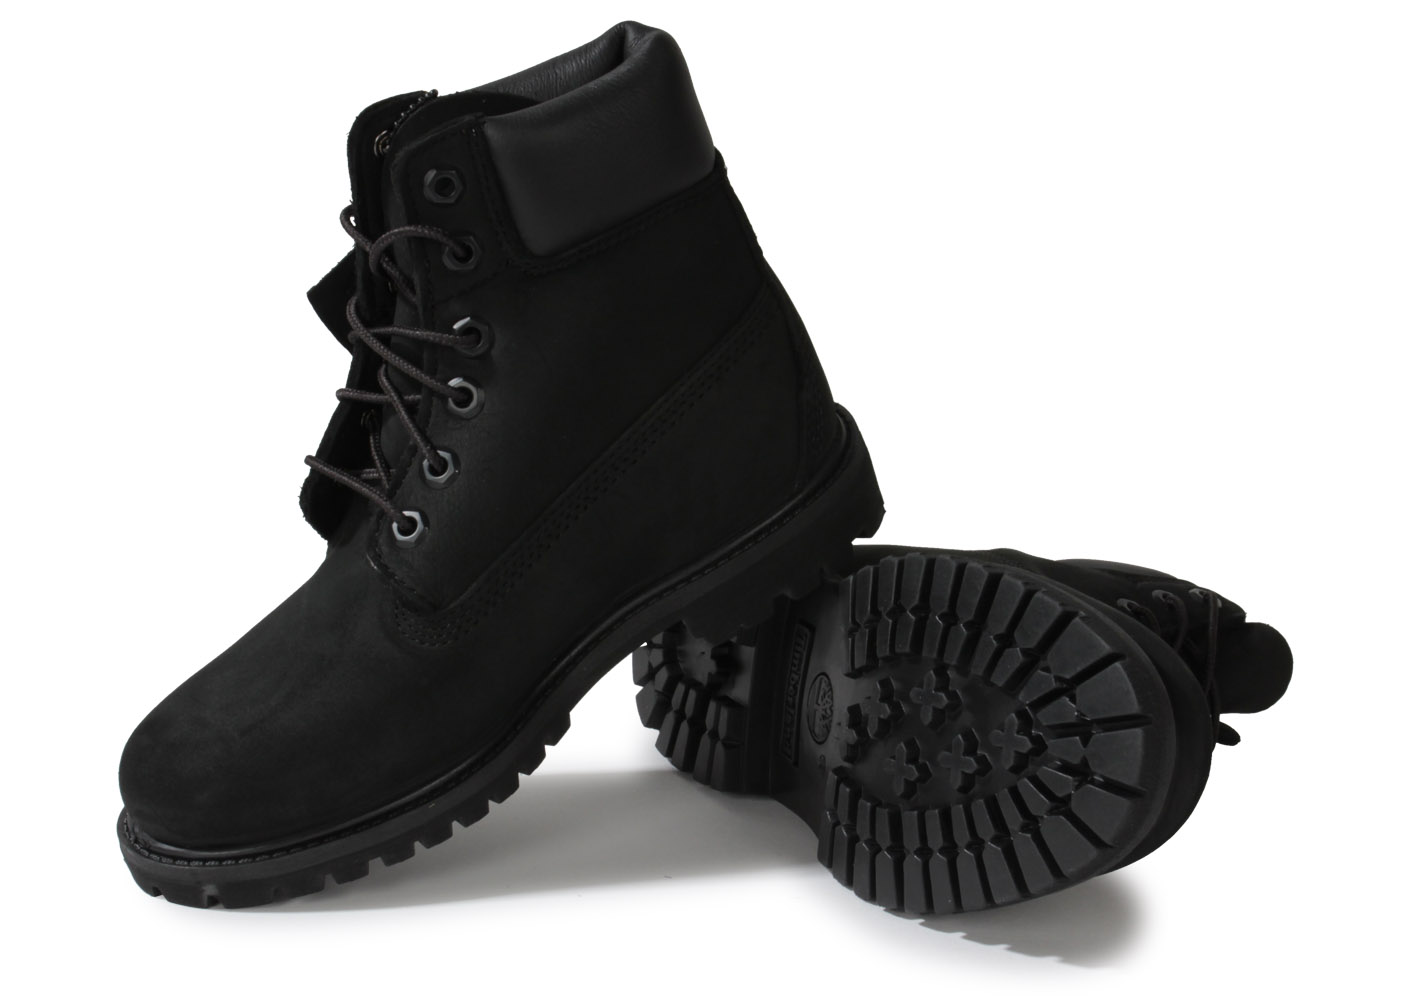 Timberland 6 inch Premium Waterproof Noire Boots Femme